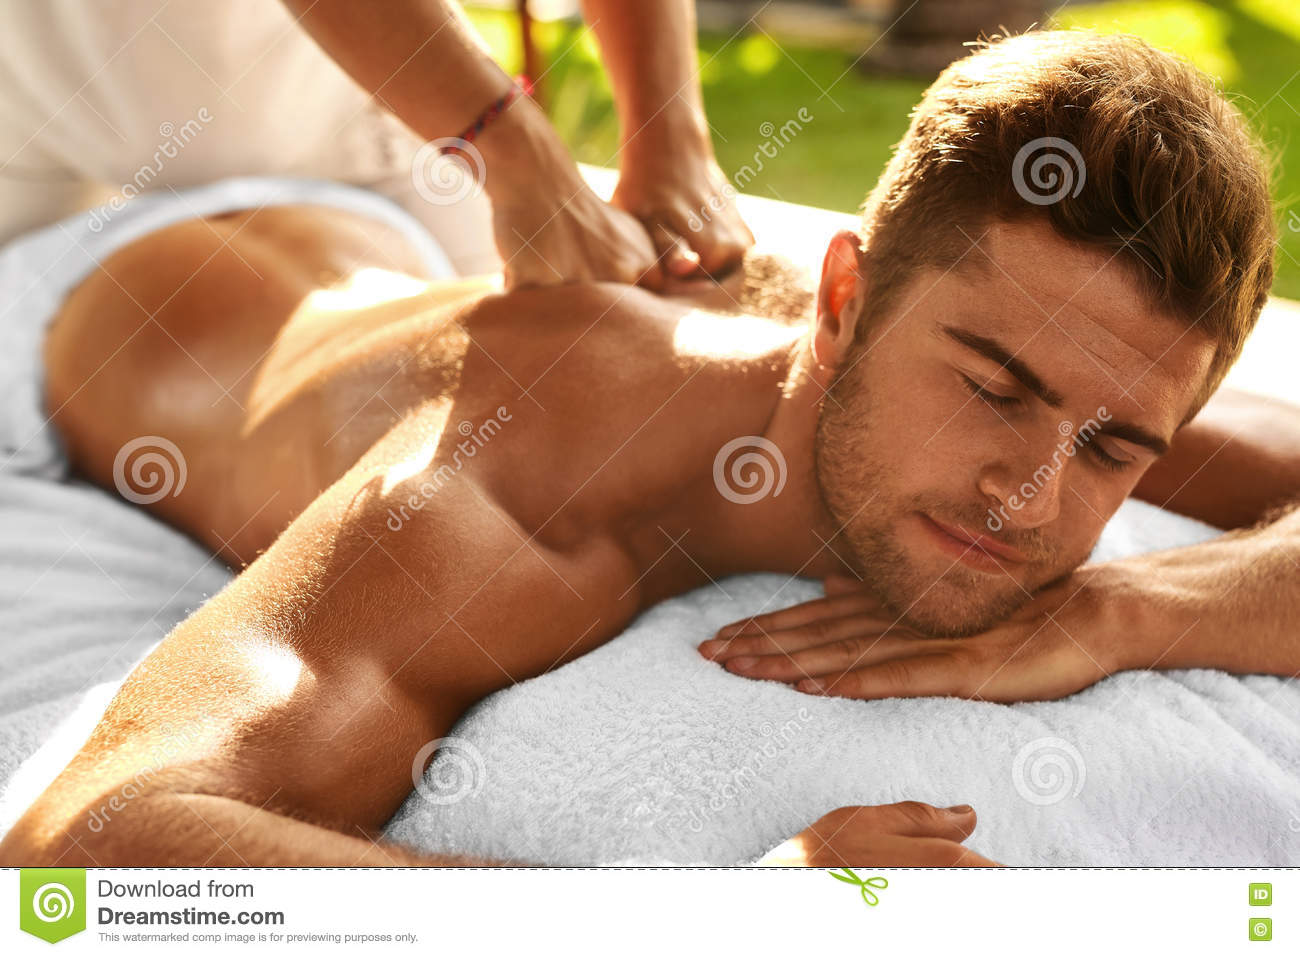 sexy massage photos